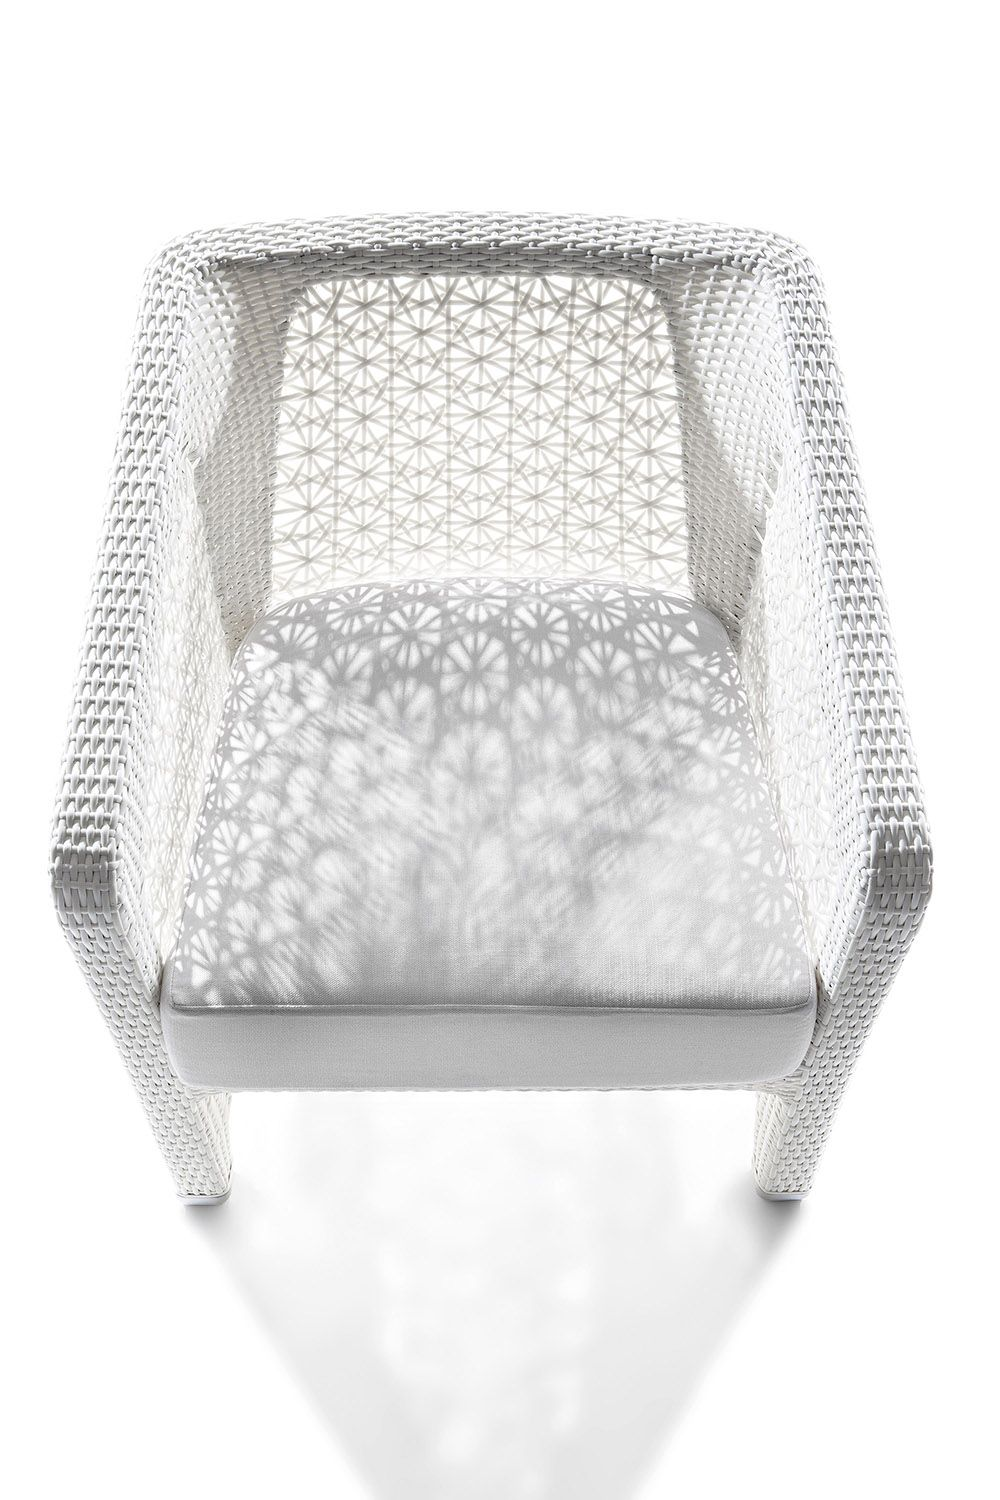 Hand Woven Chair With Aluminum Frame Covered With Pvc Fiber With Floral Pattern Ideal For De Outdoor Furniture Design Rattan Garden Furniture Outdoor Armchair